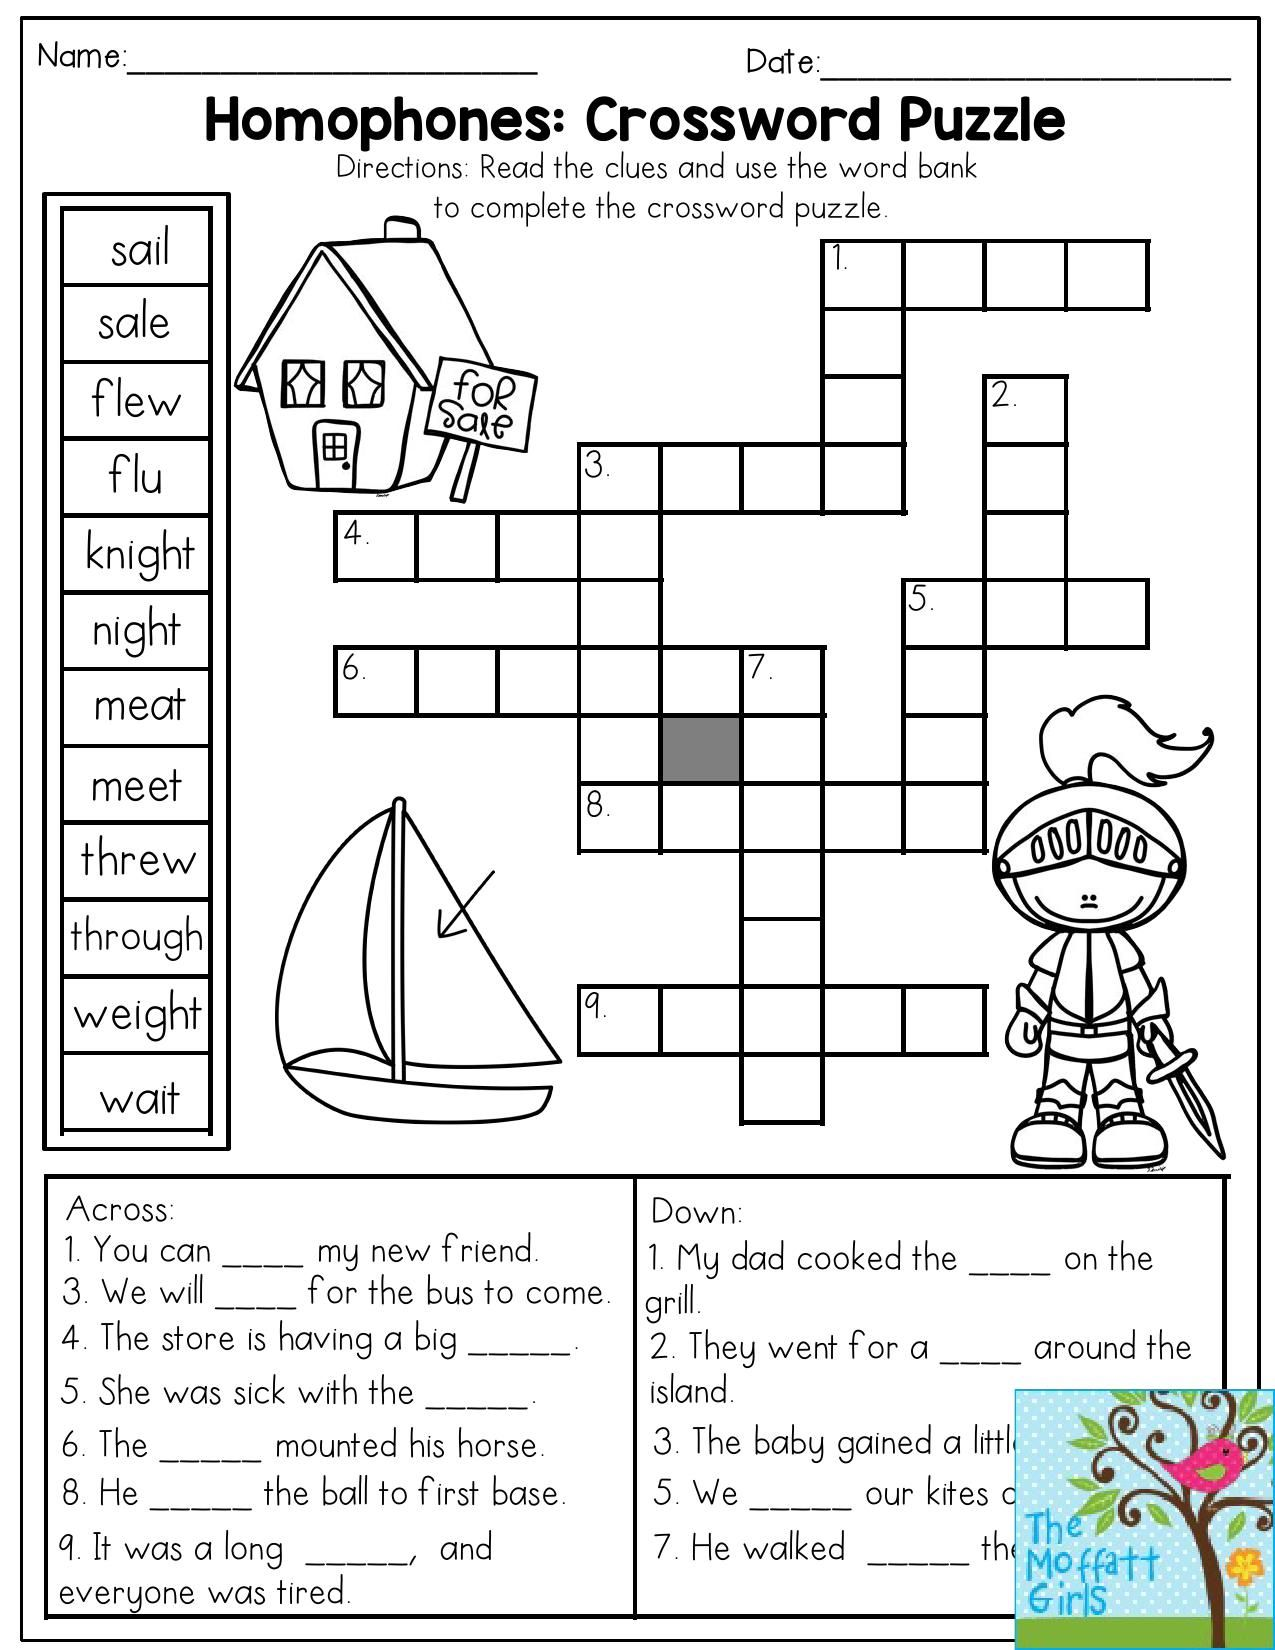 Homophones Crossword Puzzle Read The Clues And Use Word Bank To Complete Fun Work Activity From Back School NO PREP